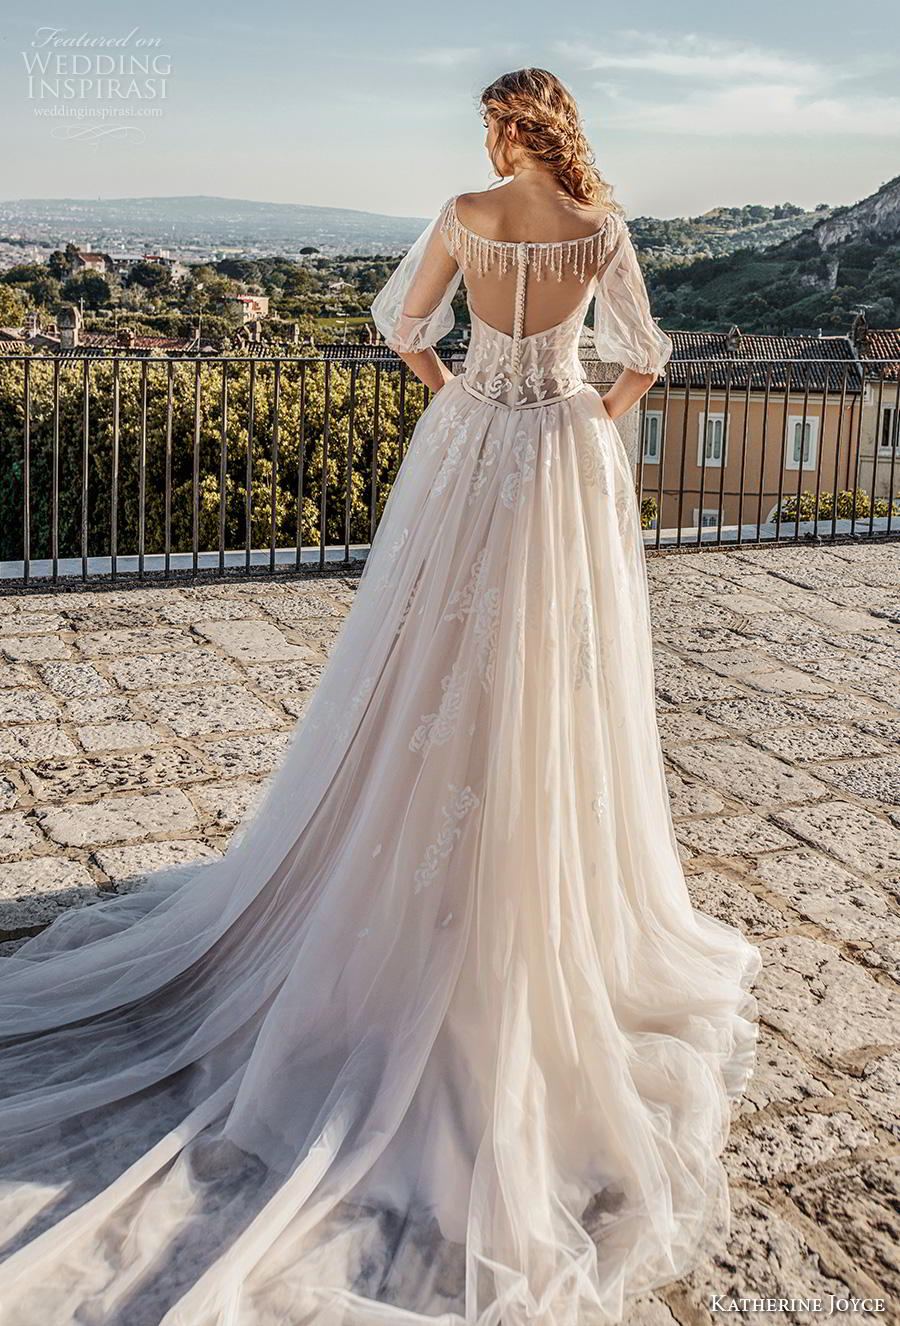 Katherine Joyce 2019 Wedding Dresses Napoli Bridal